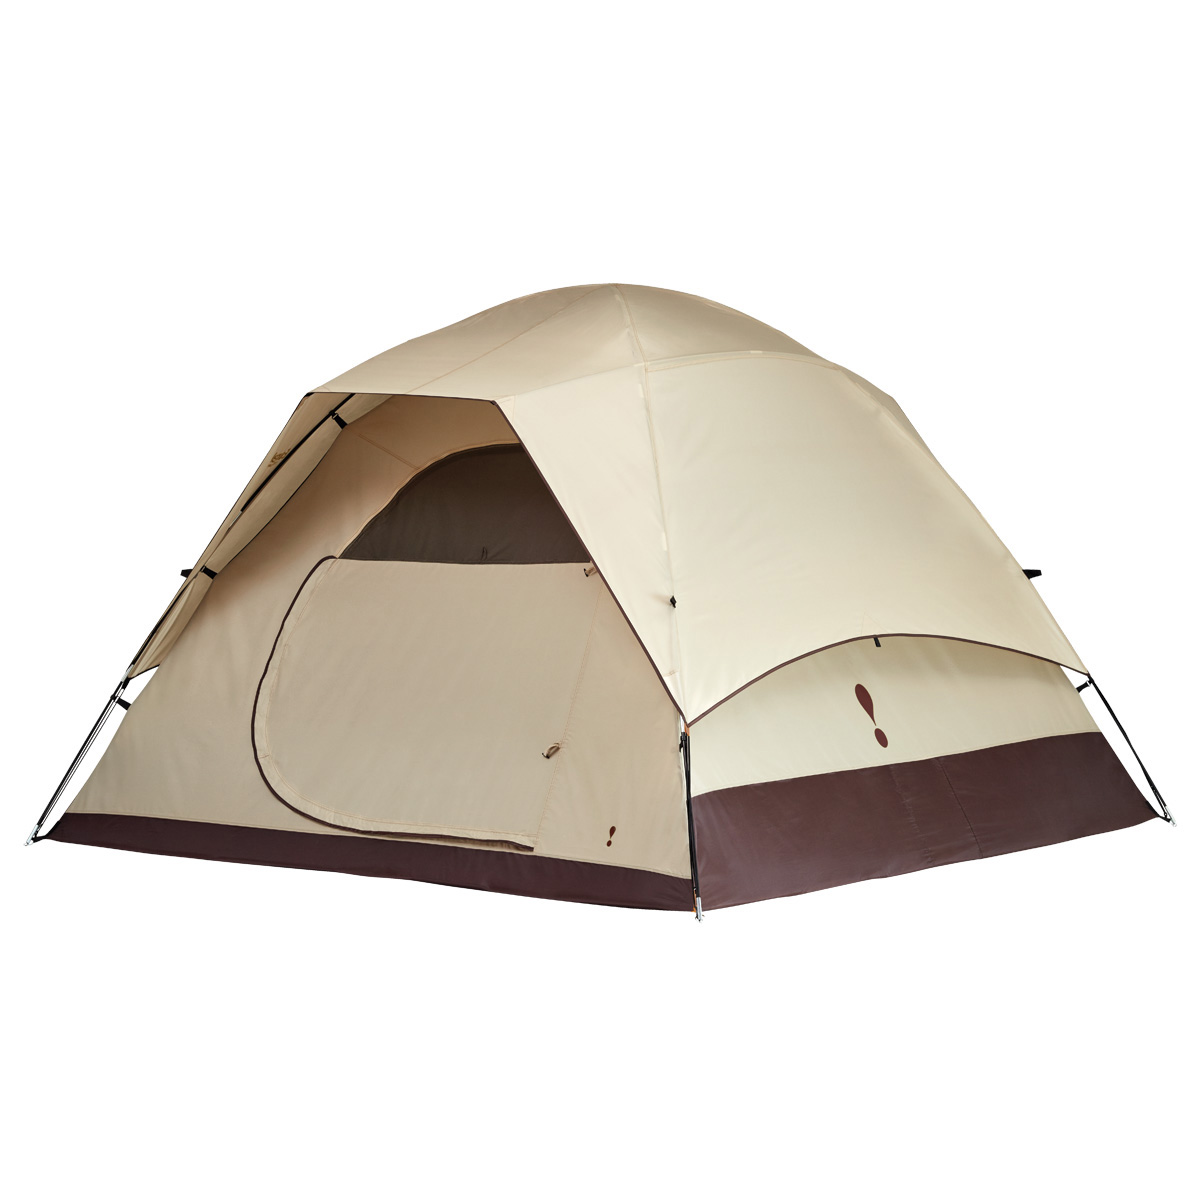 Tetragon HD 4 Person Tent  sc 1 st  Tents - Johnson Outdoors & Tetragon HD 4 Person Tent | Eureka!